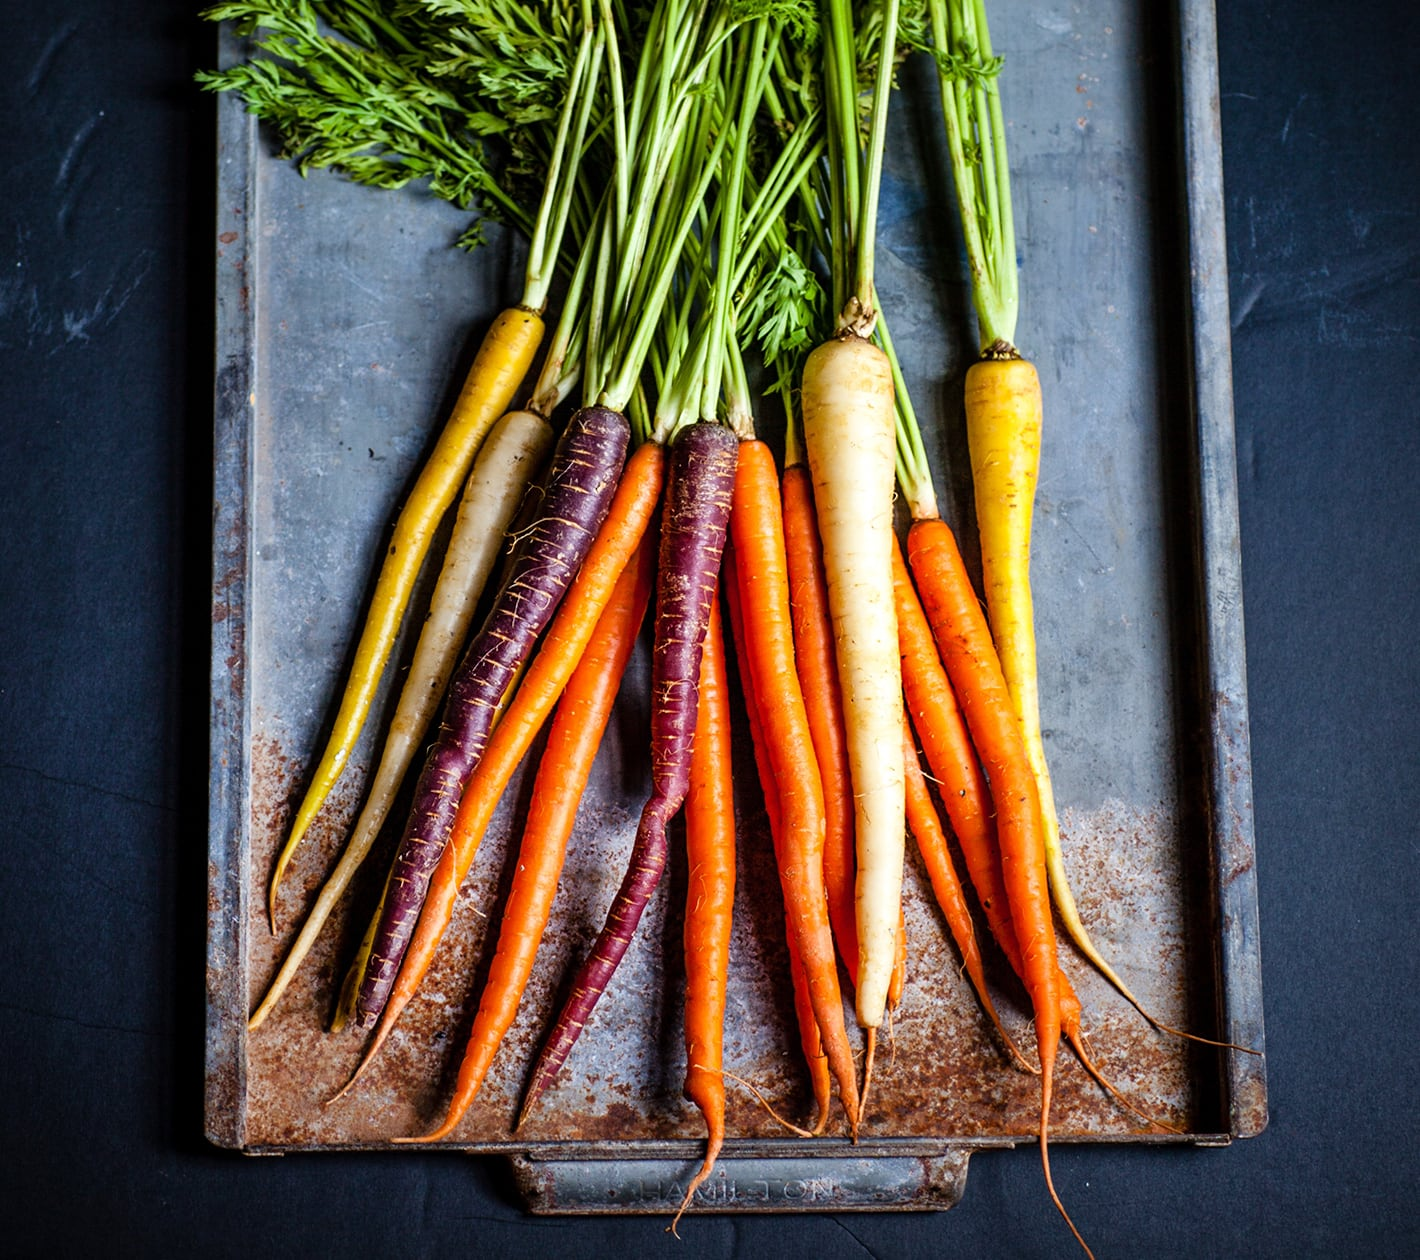 Great recipe ideas using carrots